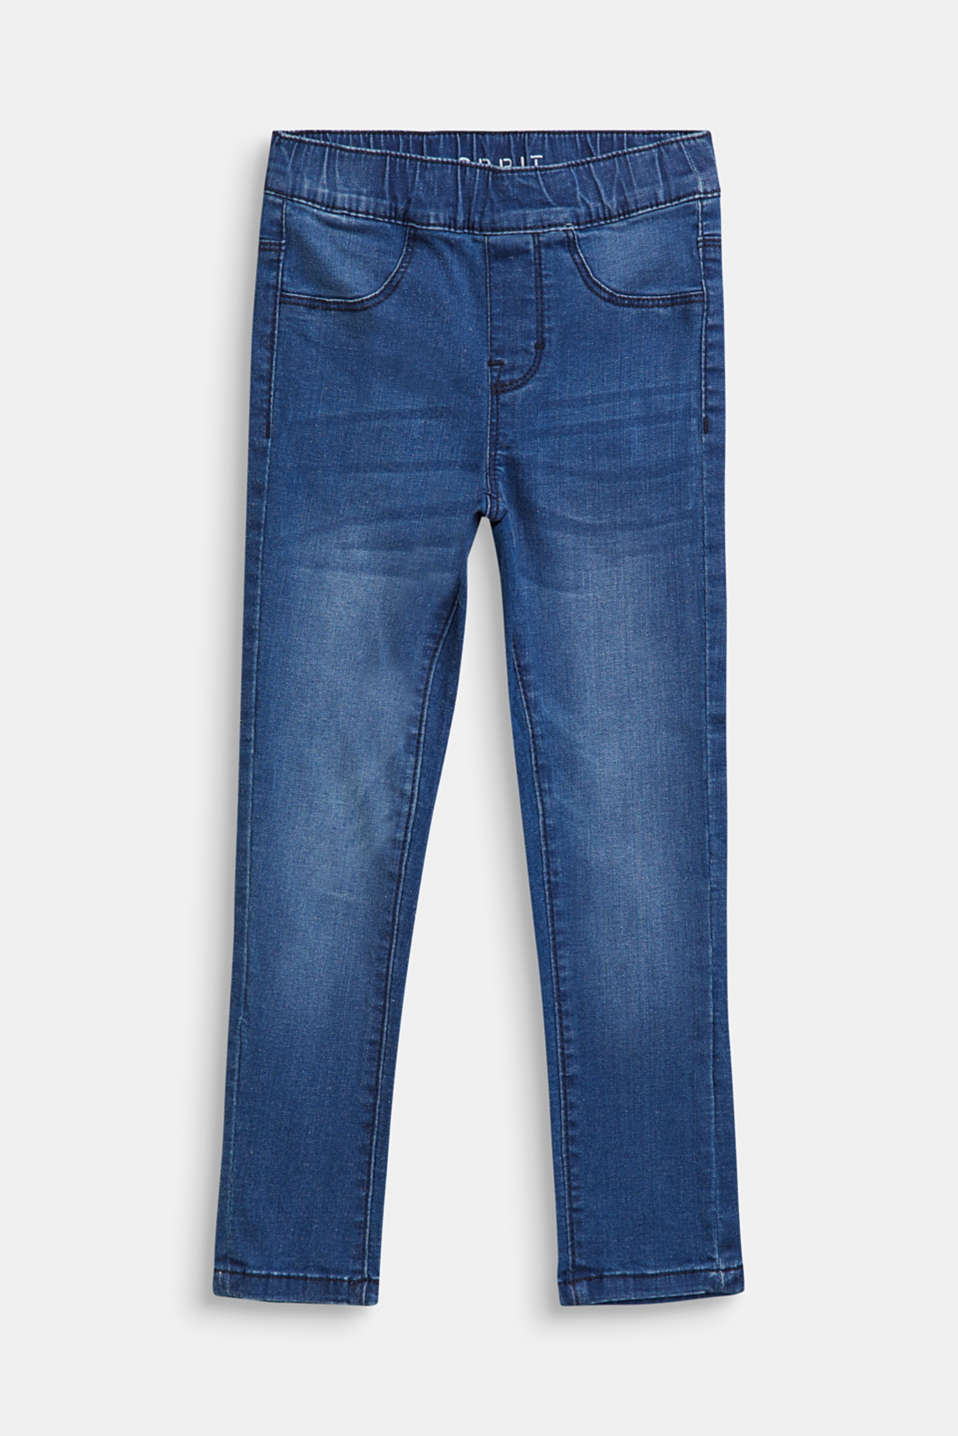 Esprit - Jeggings mit Washed-Effekten